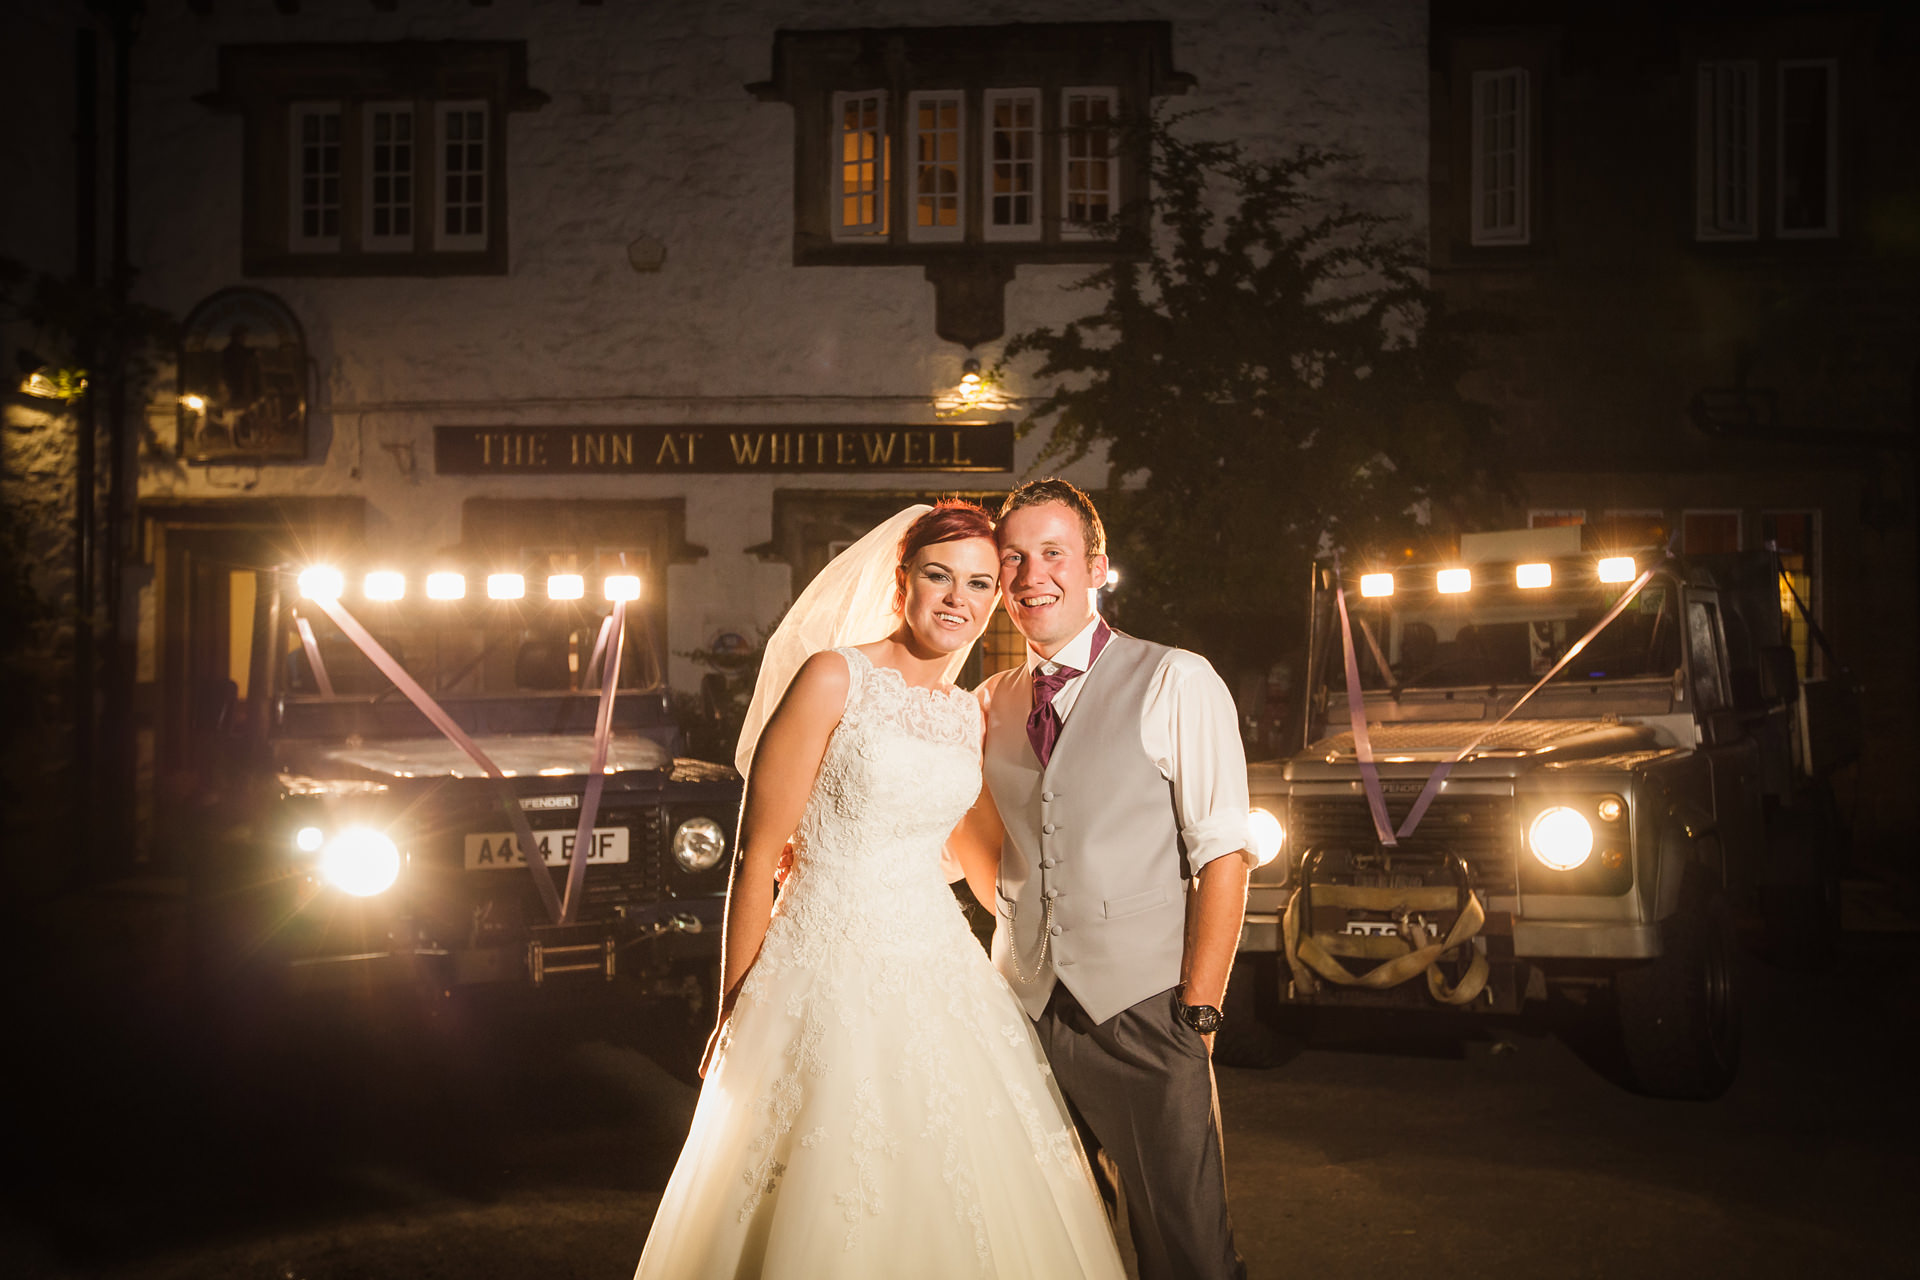 Inn at Whitewell wedding photography; bride and groom night portrait in front of land rovers on their wedding day